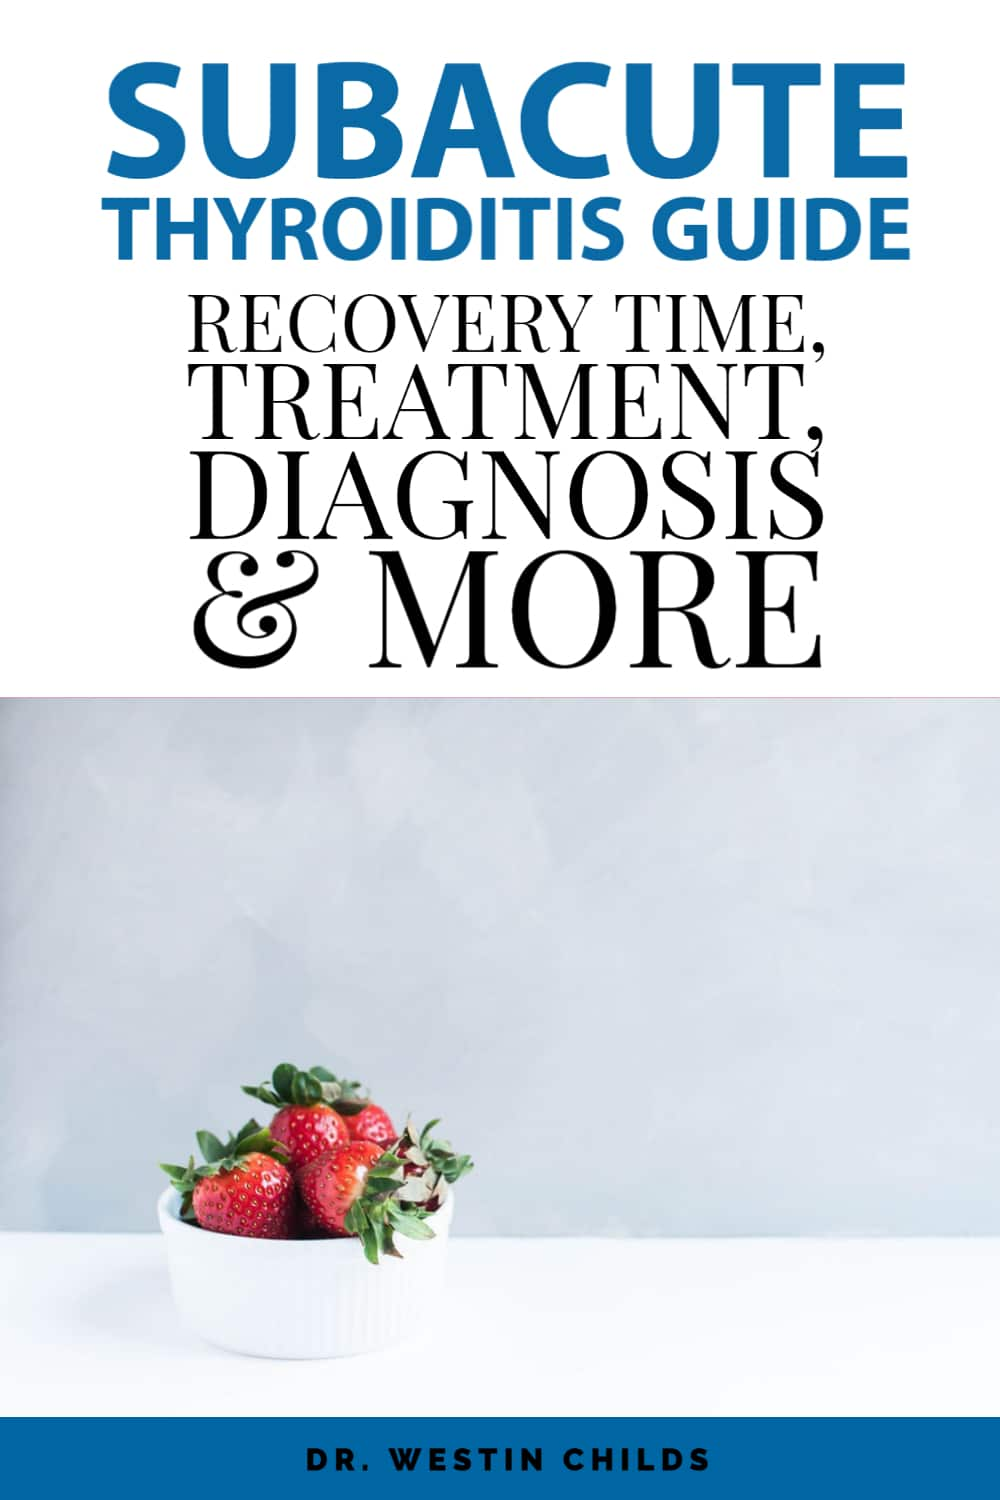 subacute thyroiditis recovery guide